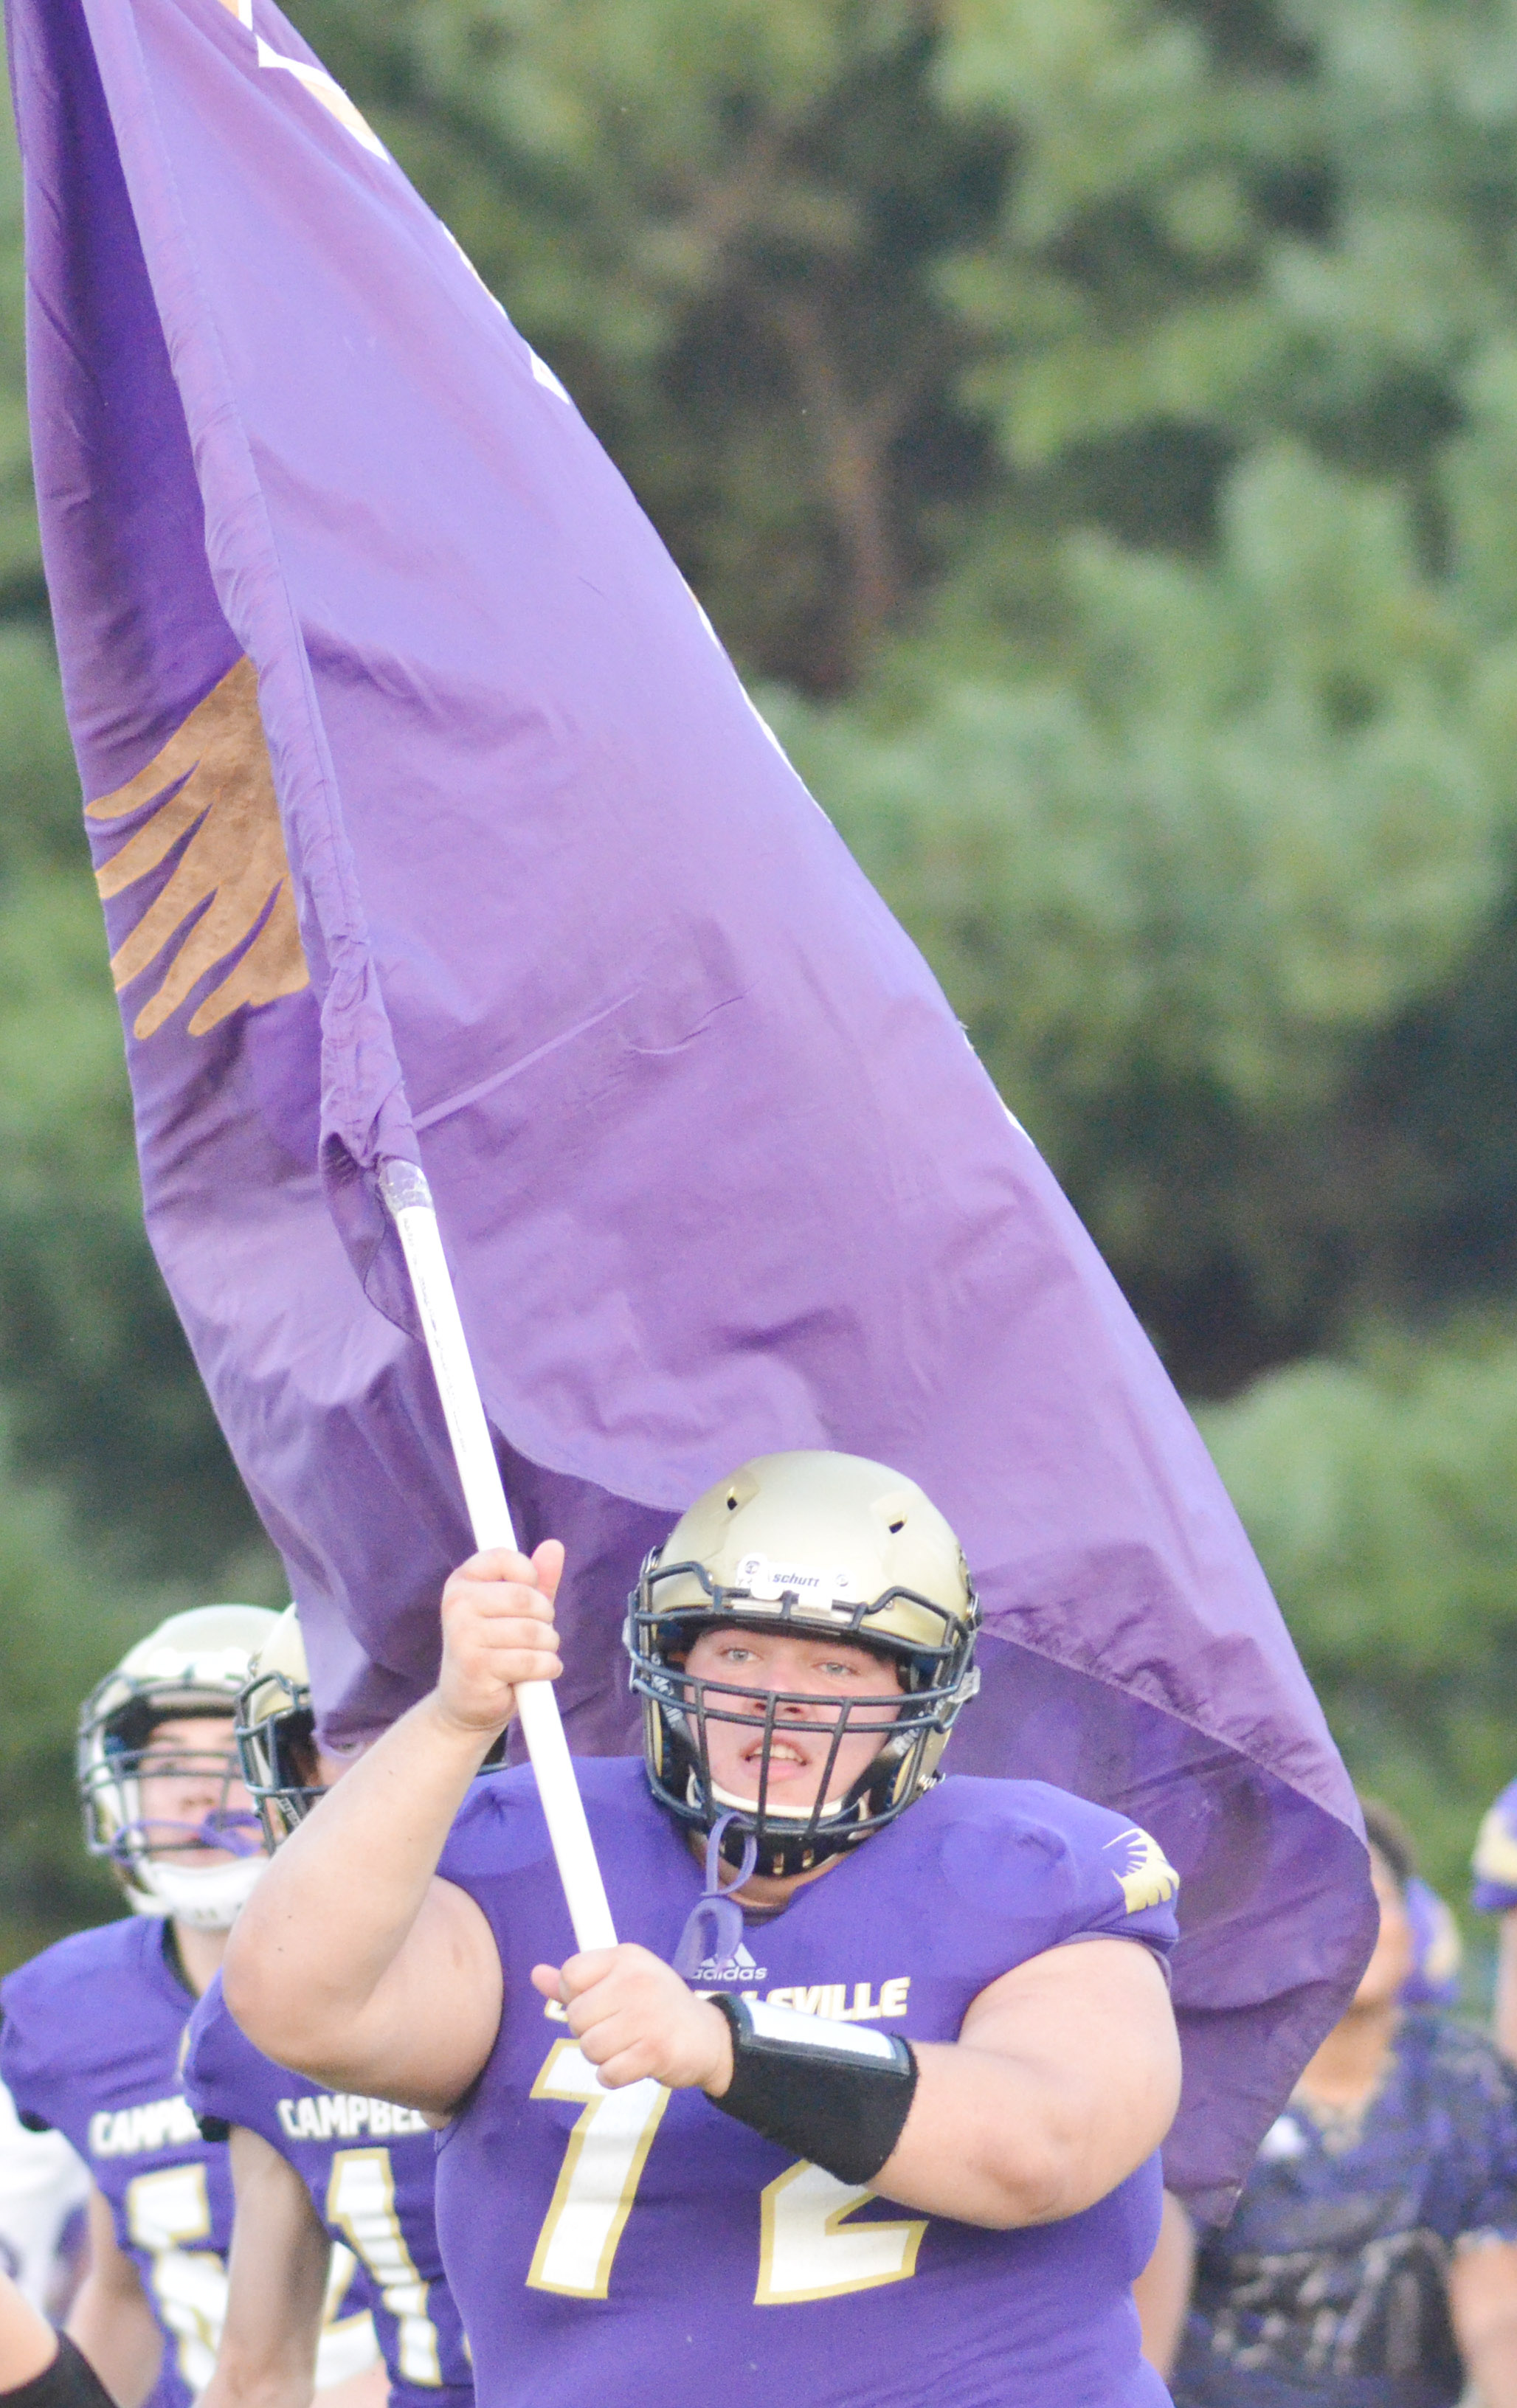 CHS senior Ryan Wiedewitsch carries the Eagles flag onto the field.